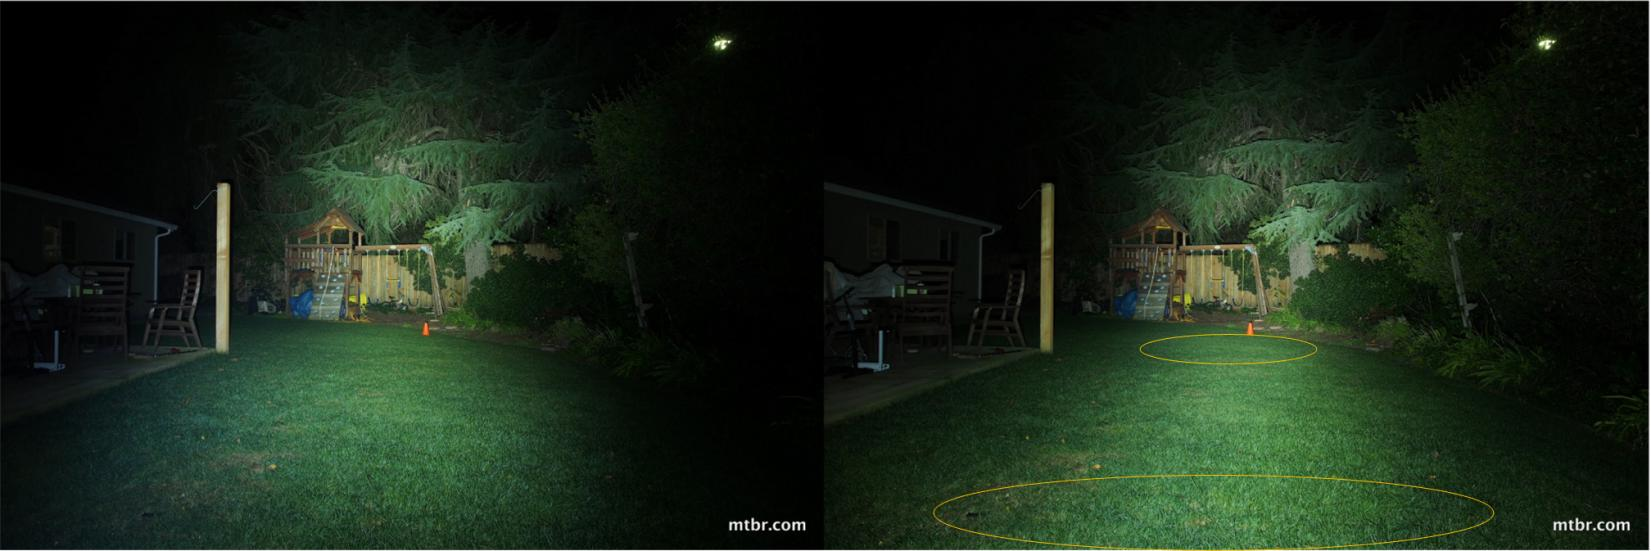 Name:  GlowormX2_vs_DS1300_annotated.jpg Views: 794 Size:  101.4 KB